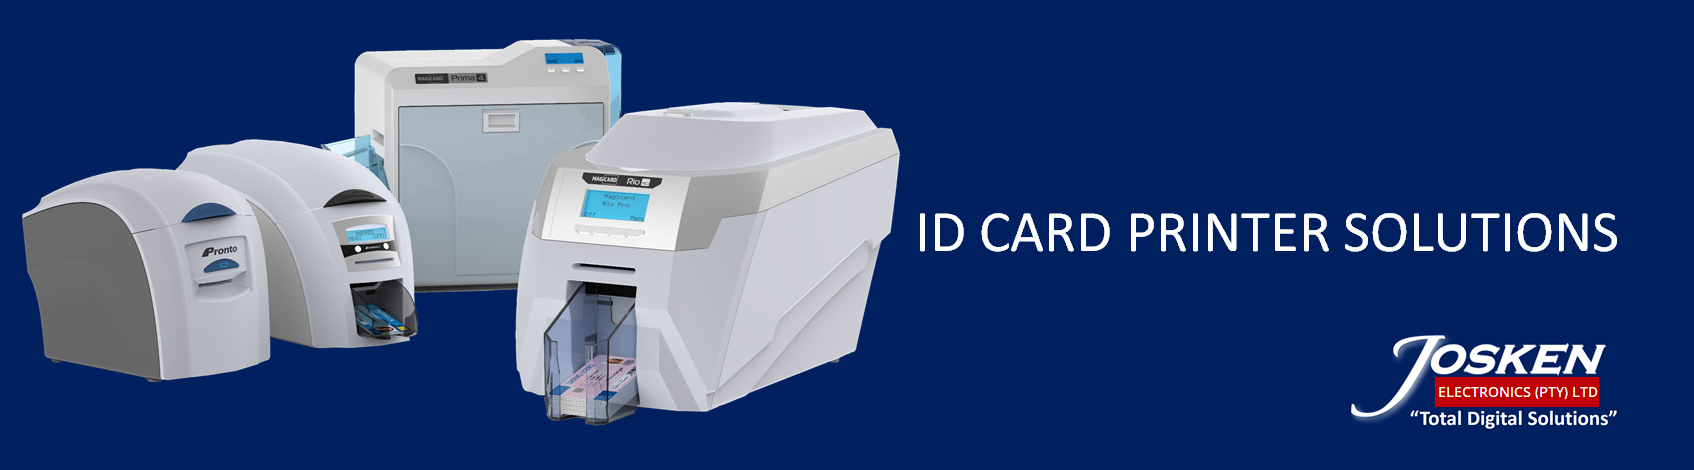 ID-CARD-PRINTER-BANNER